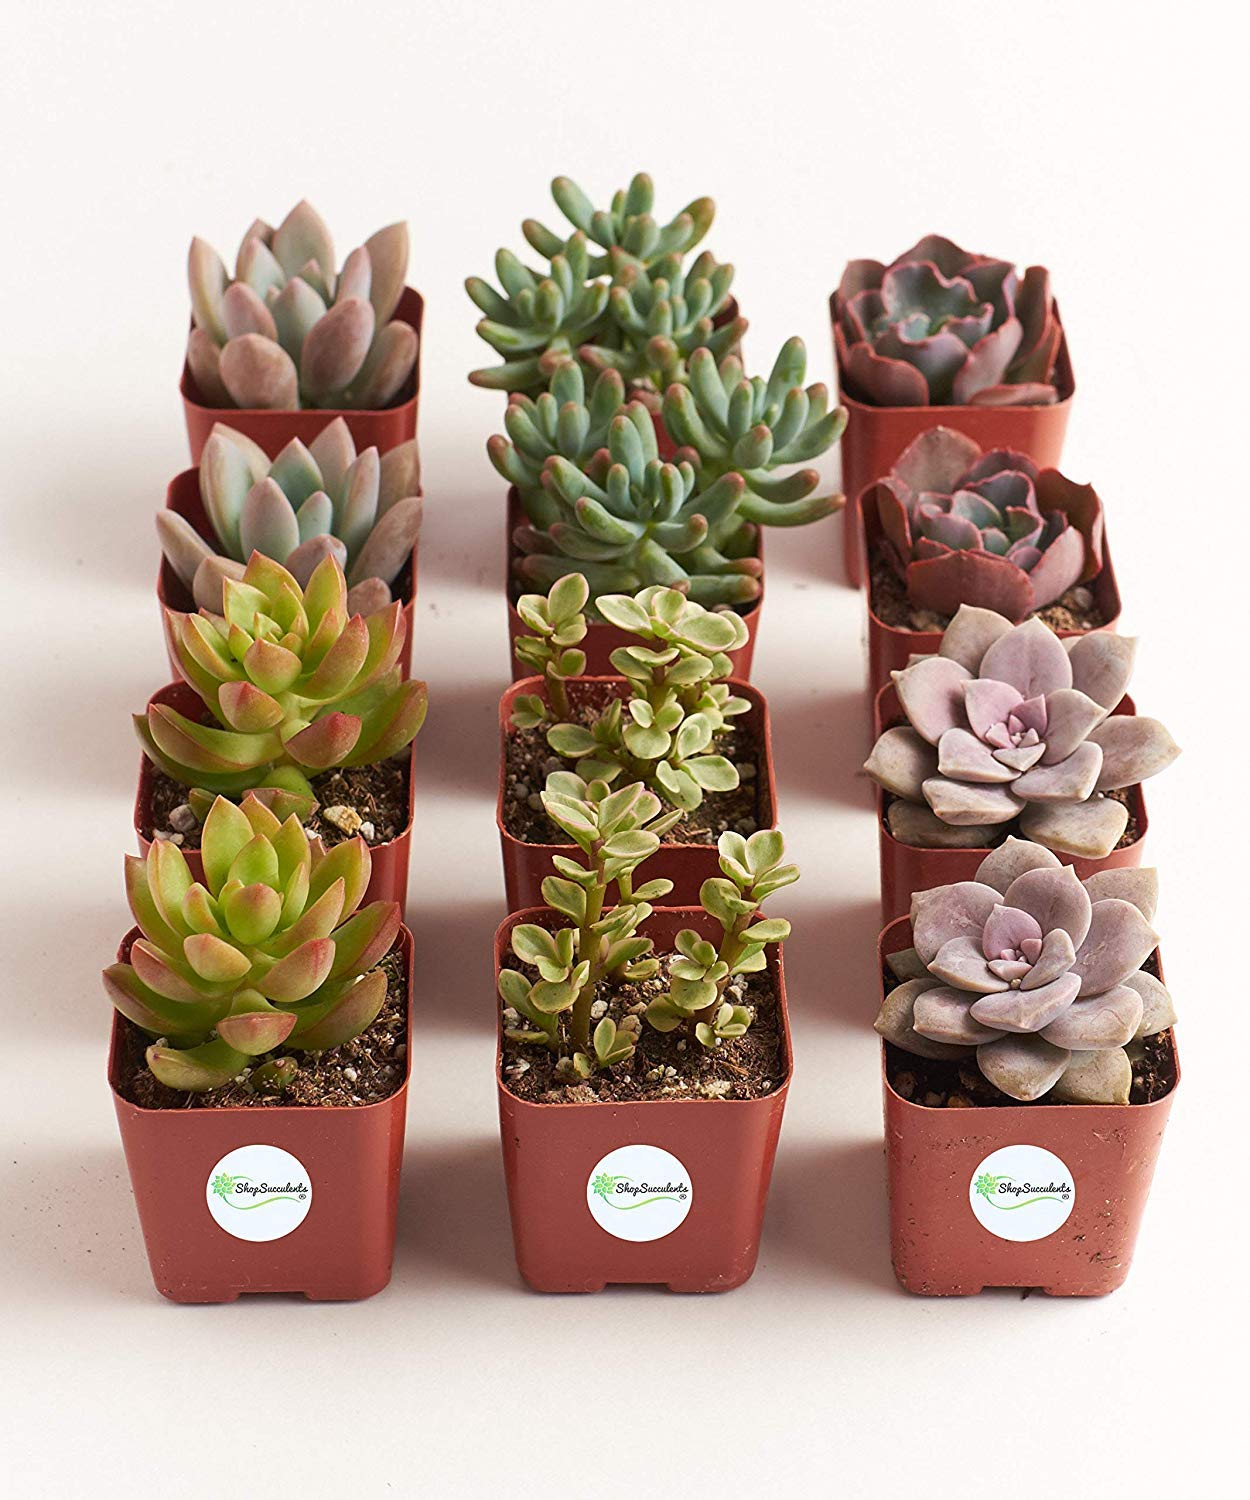 Shop Succulents  Premium Pastel Collection of LiveSucculent Plants, Hand Selected Variety Pack of Mini Succulents   Collection of 12 in 2'' pots by Shop Succulents (Image #4)